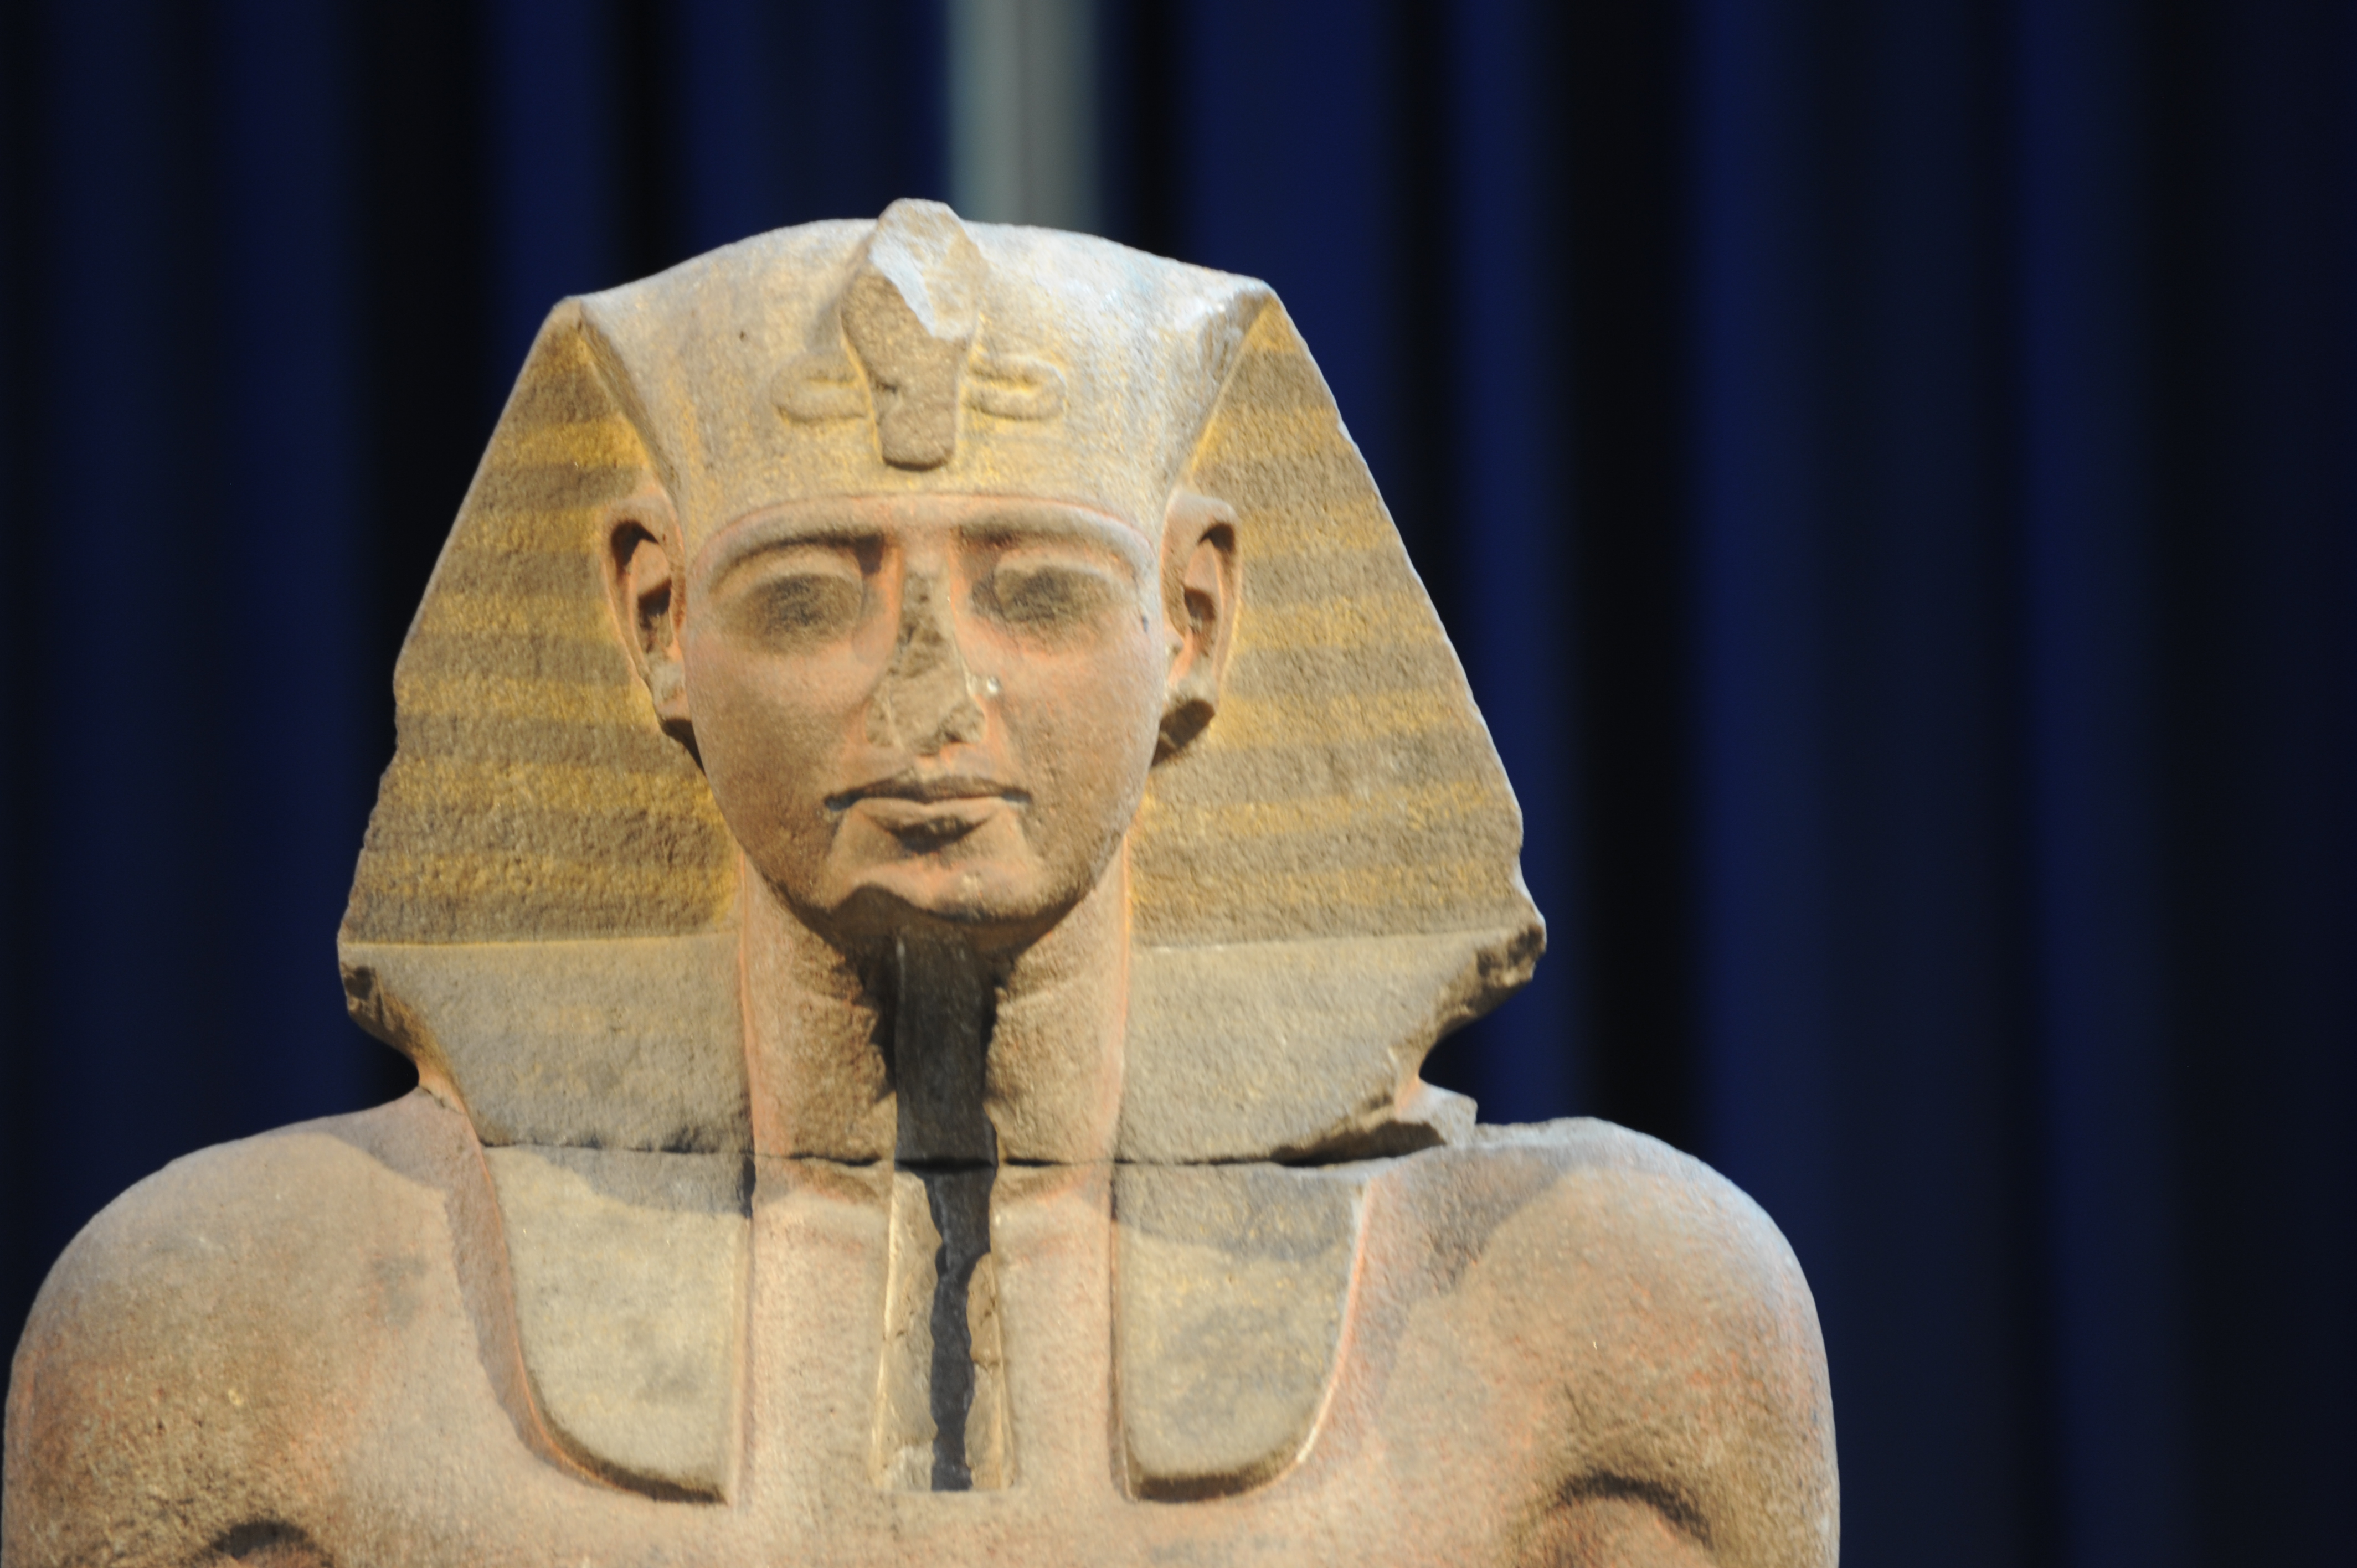 The Pharaoh Ramses II: The Legend of a Ruler - Natural Healthy Living